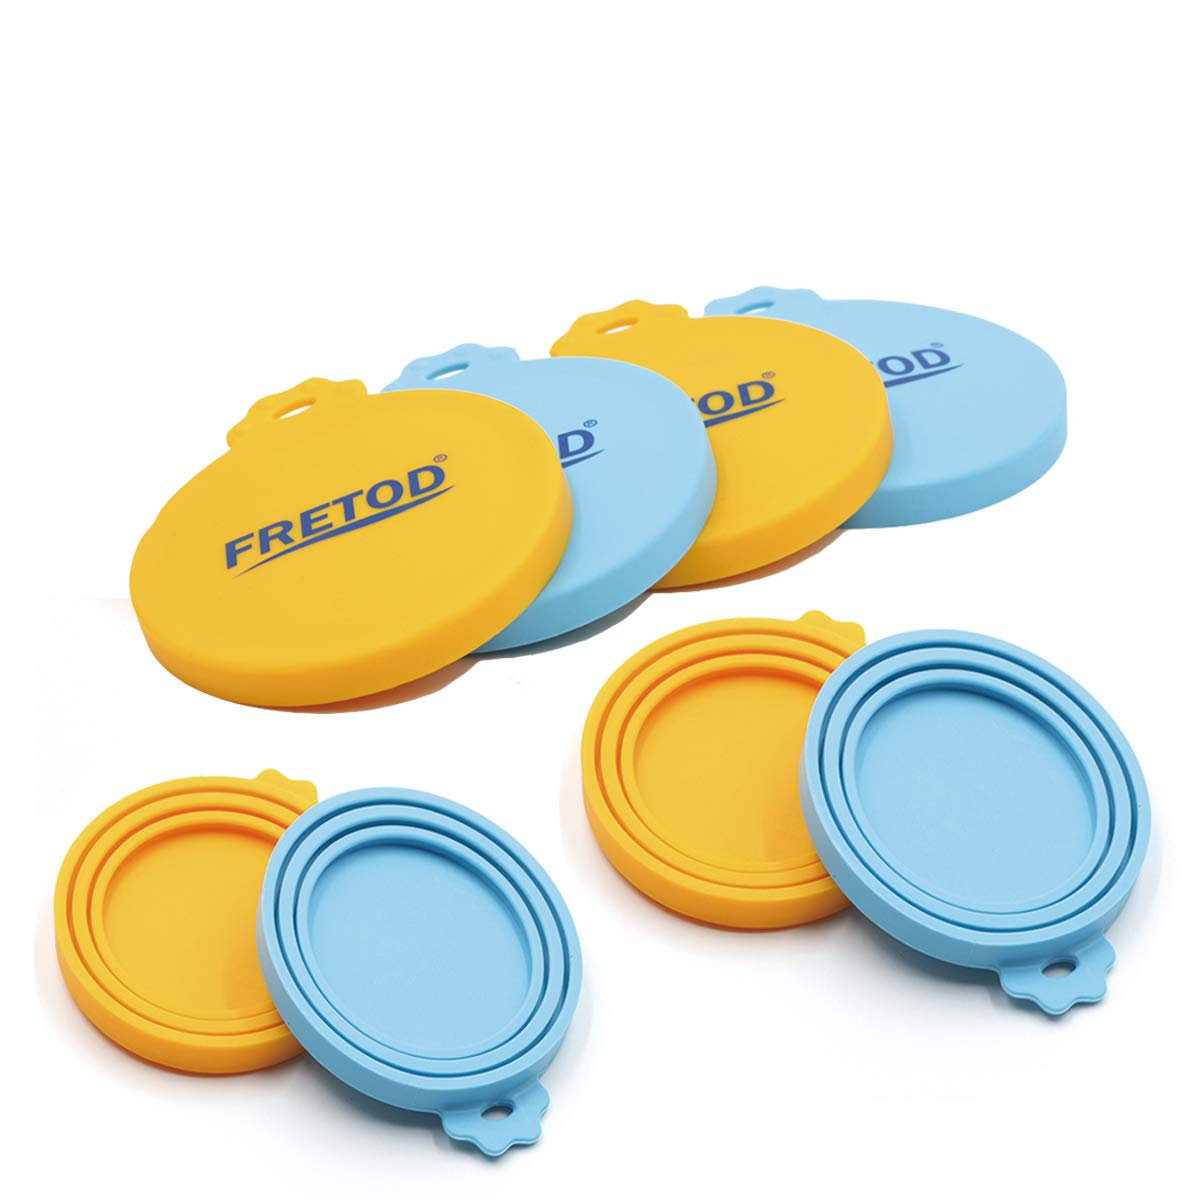 Silicone Can Lids - 4 Pack Can Cover for Cat Dog Can Food - One Size Fits All Standard Size Can Top FRETOD